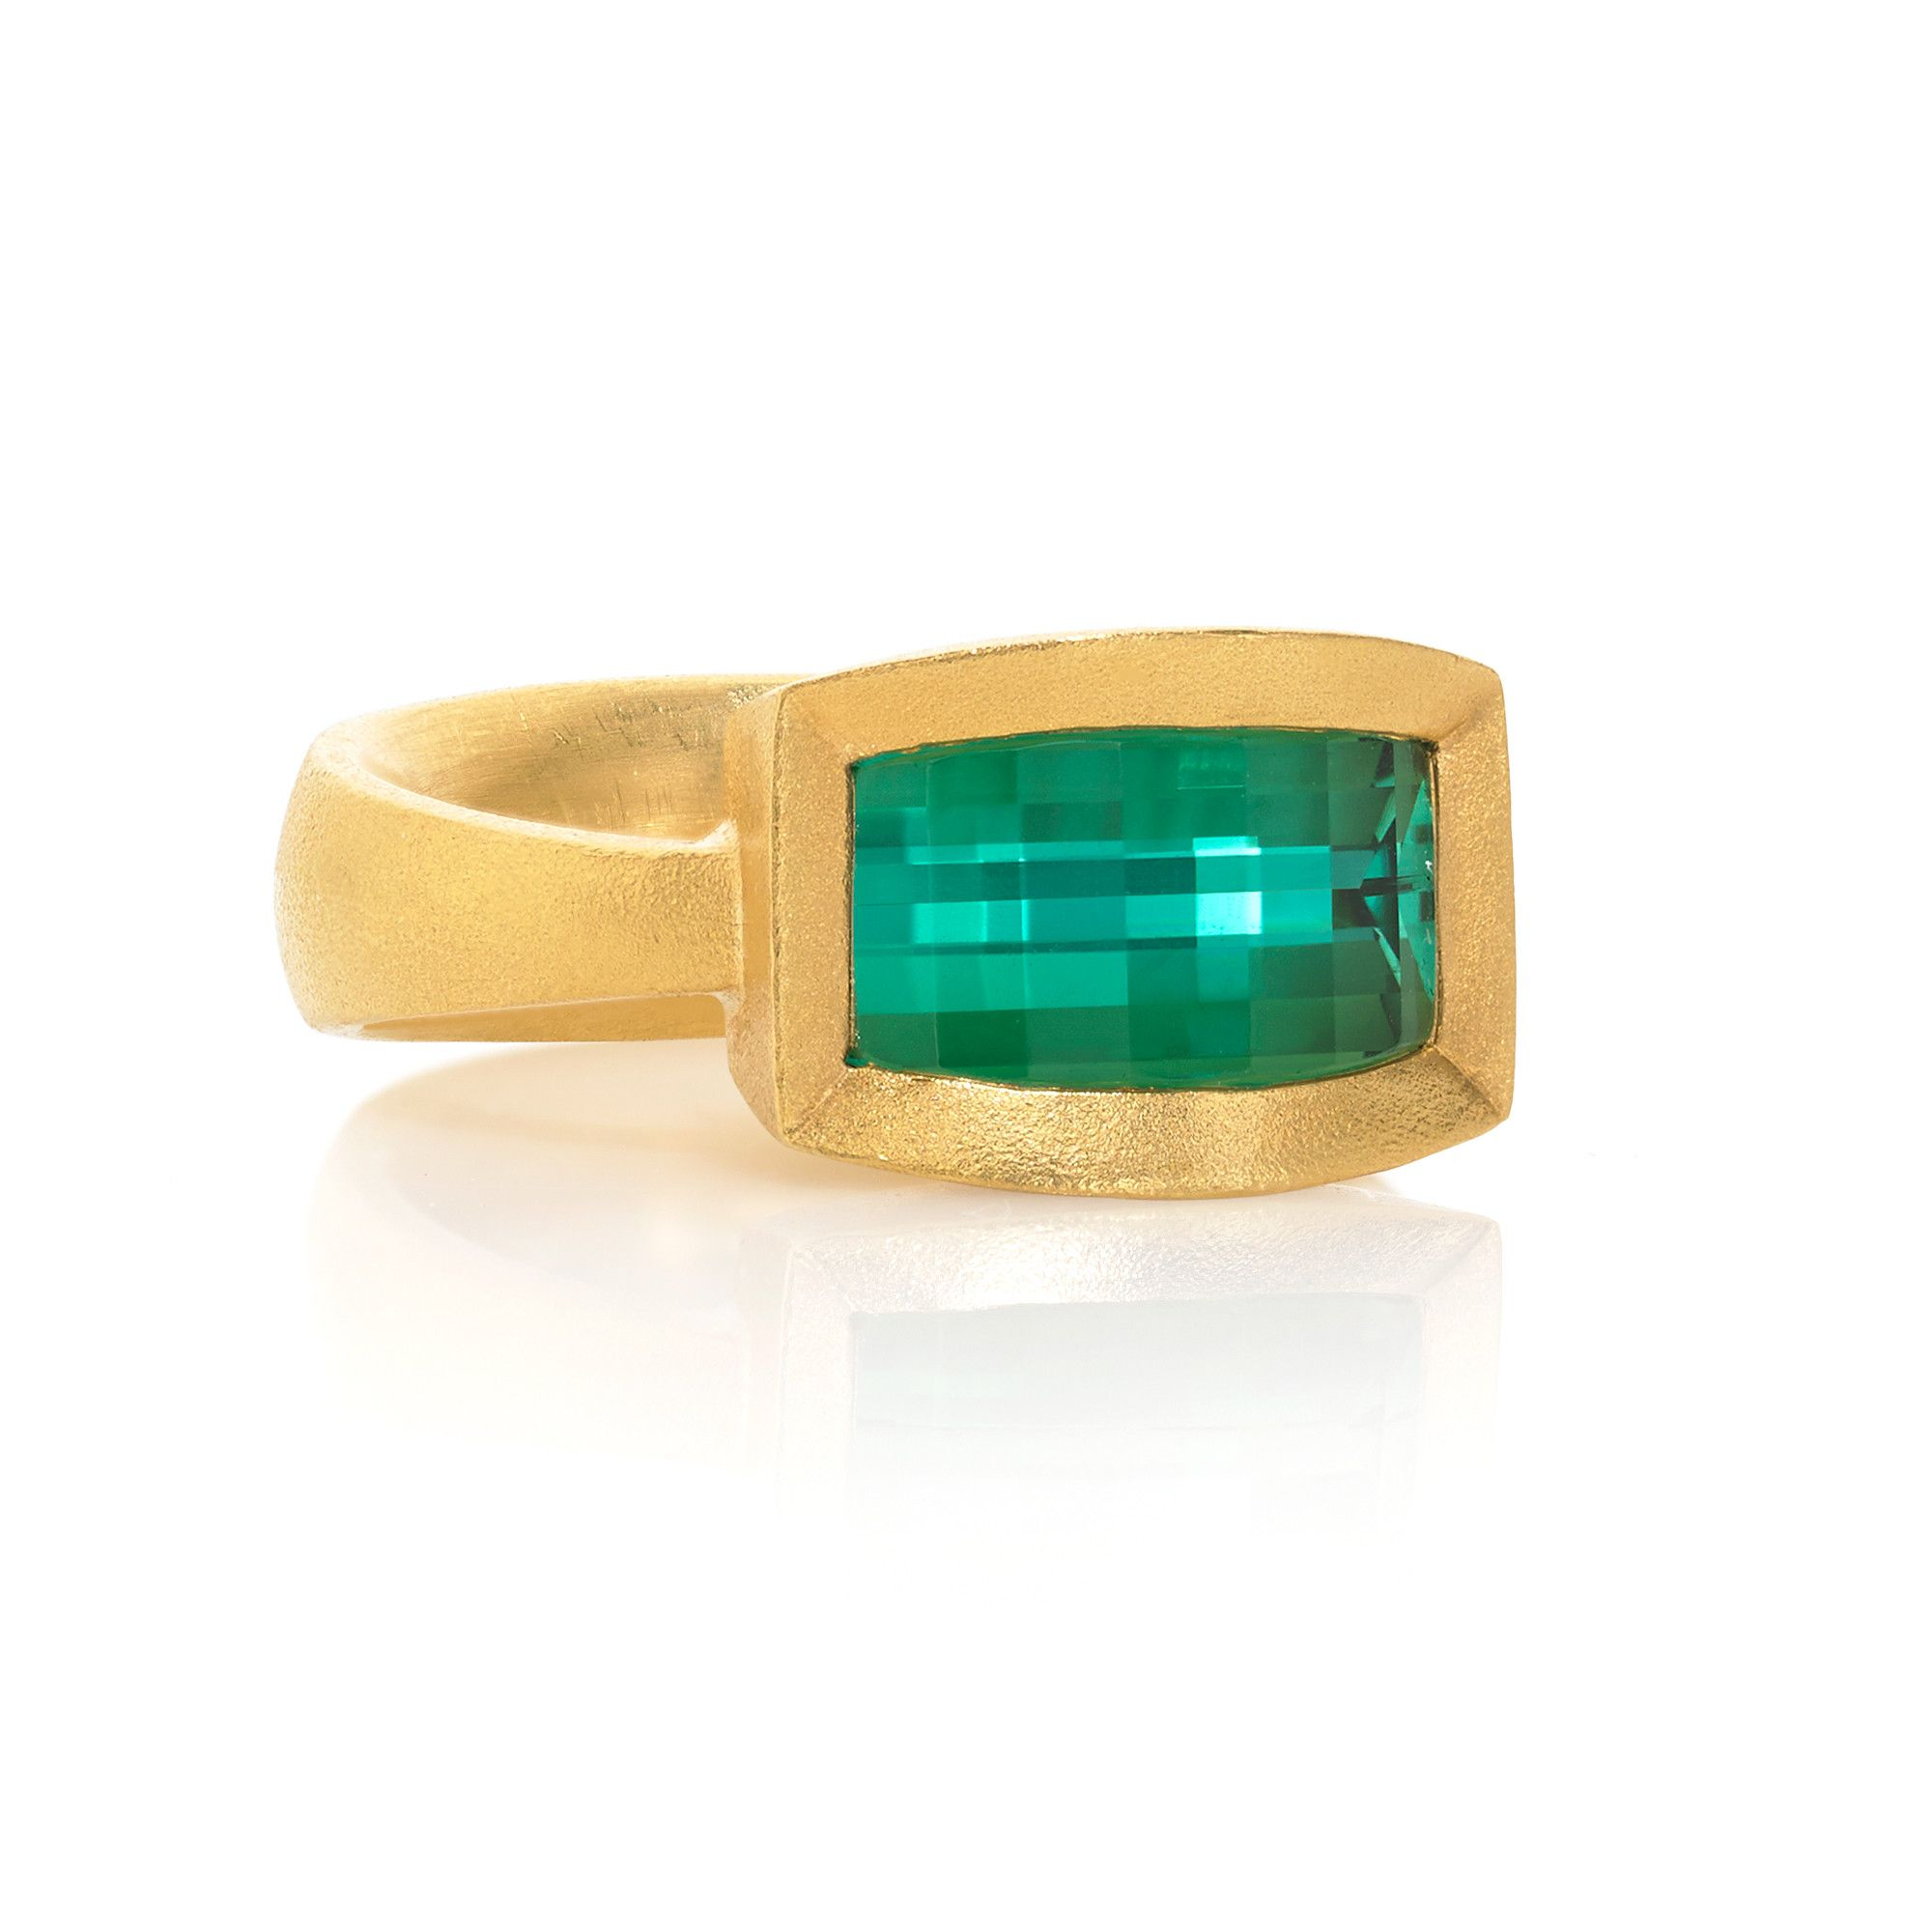 helene h green tourmaline gold l princess rings product jewelry ring gallery de ne lyst and marie taillac